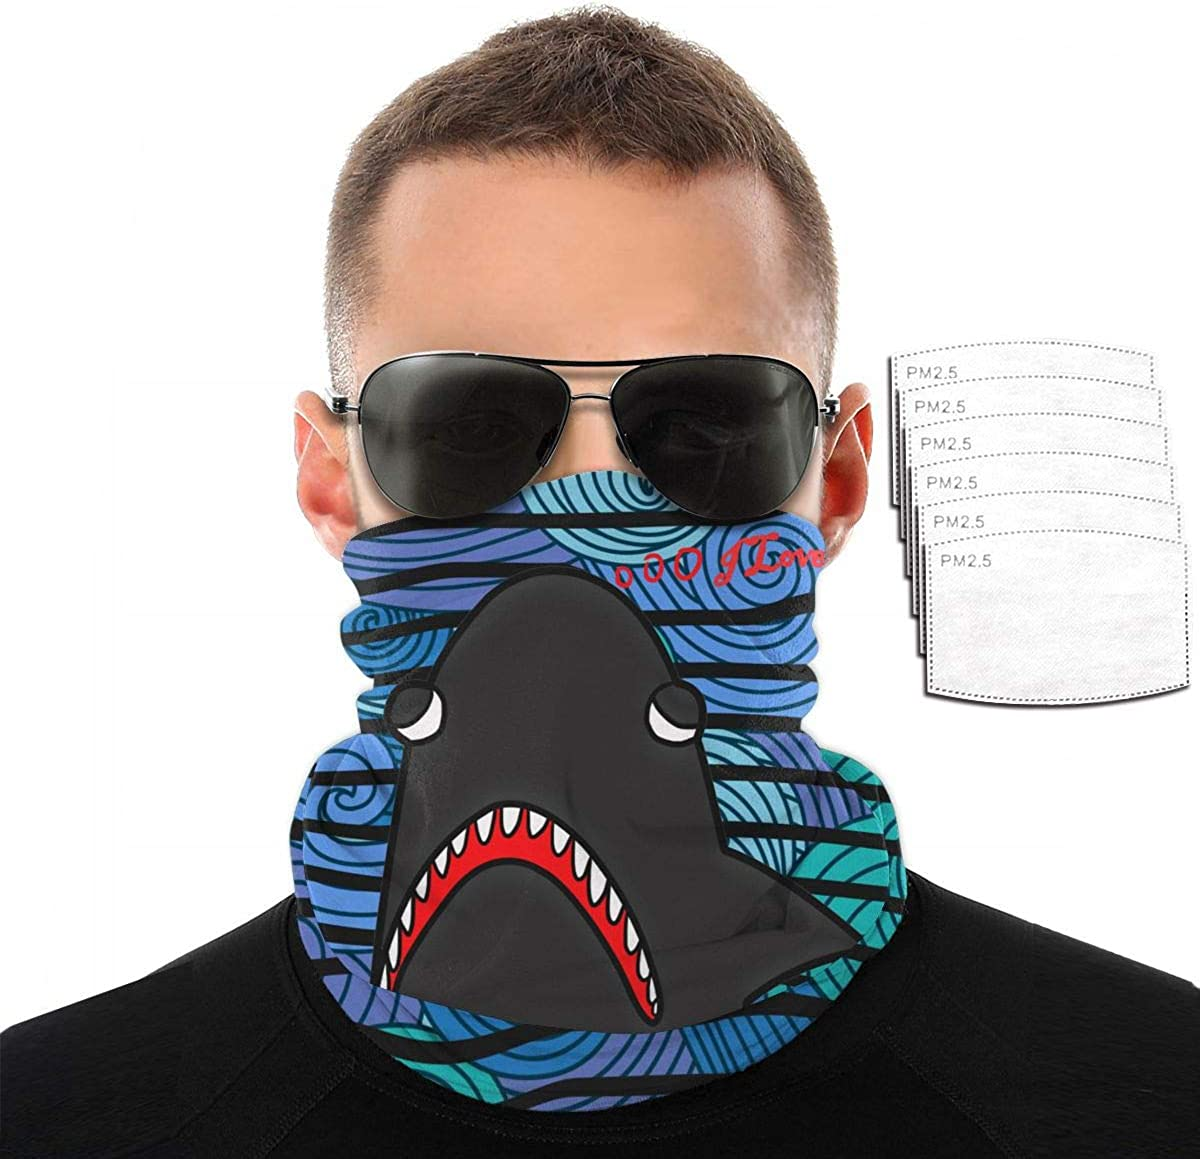 I Love Great White Shark Mens Warm Face Cover Windproof Neck Cover +Multiple Filters with 6 Filter